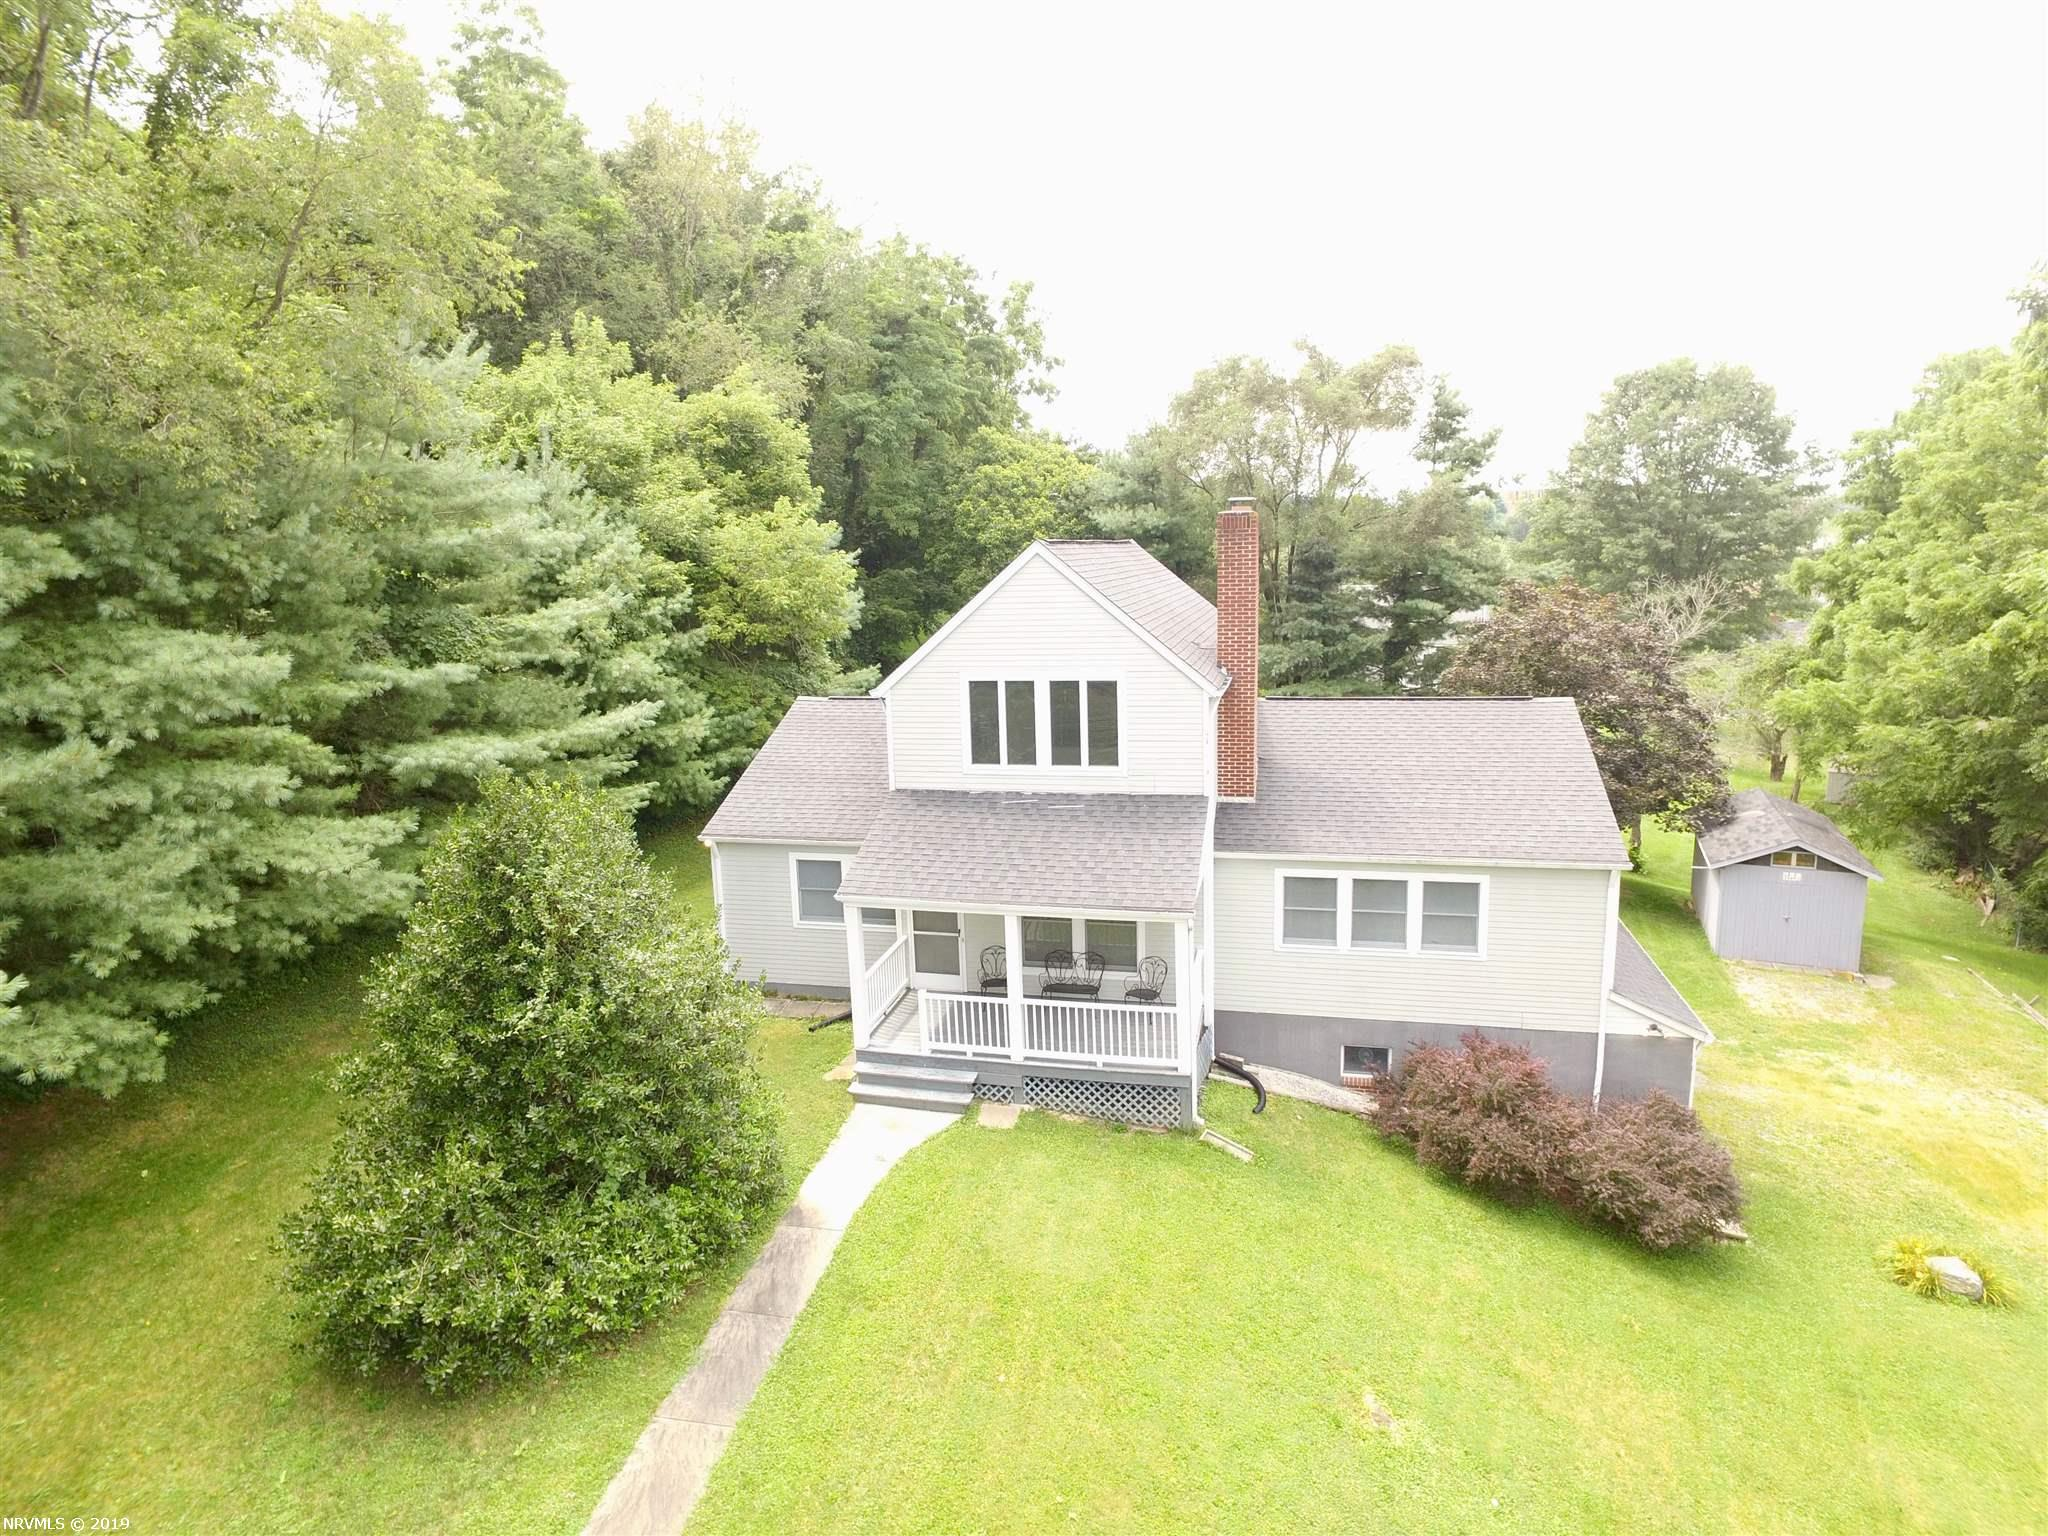 Nice contemporary home offering 3BR, 3 Bath, volume ceilings, beautiful hardwood floors, covered front porch, nice private location, convenient to everything. Full basement offers great storage or shop area.